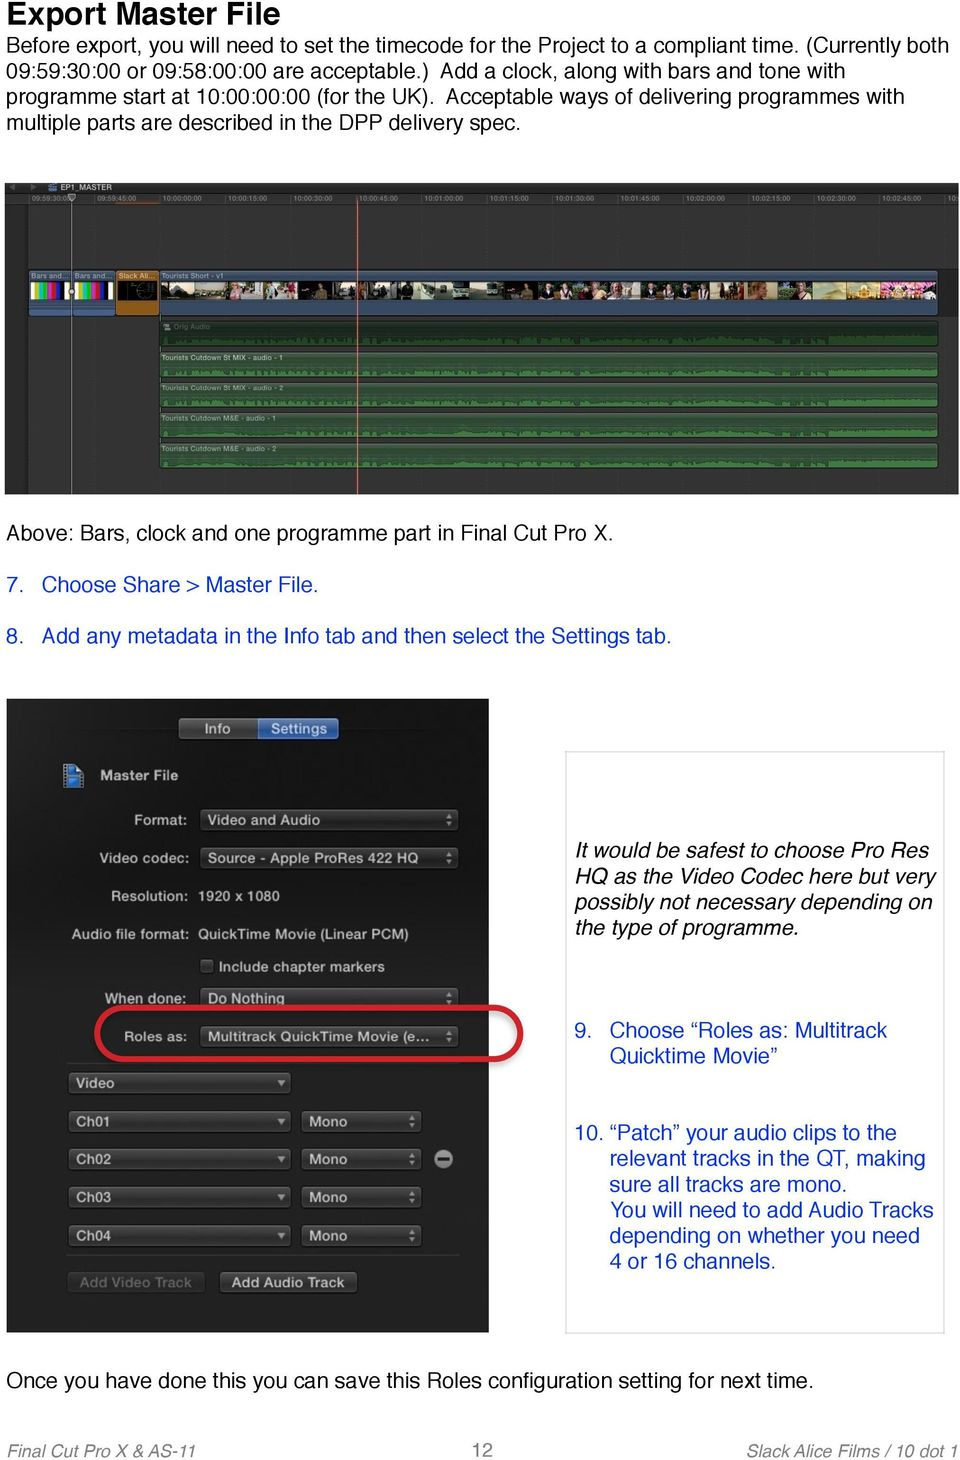 Above: Bars, clock and one programme part in Final Cut Pro X. 7. Choose Share > Master File. 8. Add any metadata in the Info tab and then select the Settings tab.